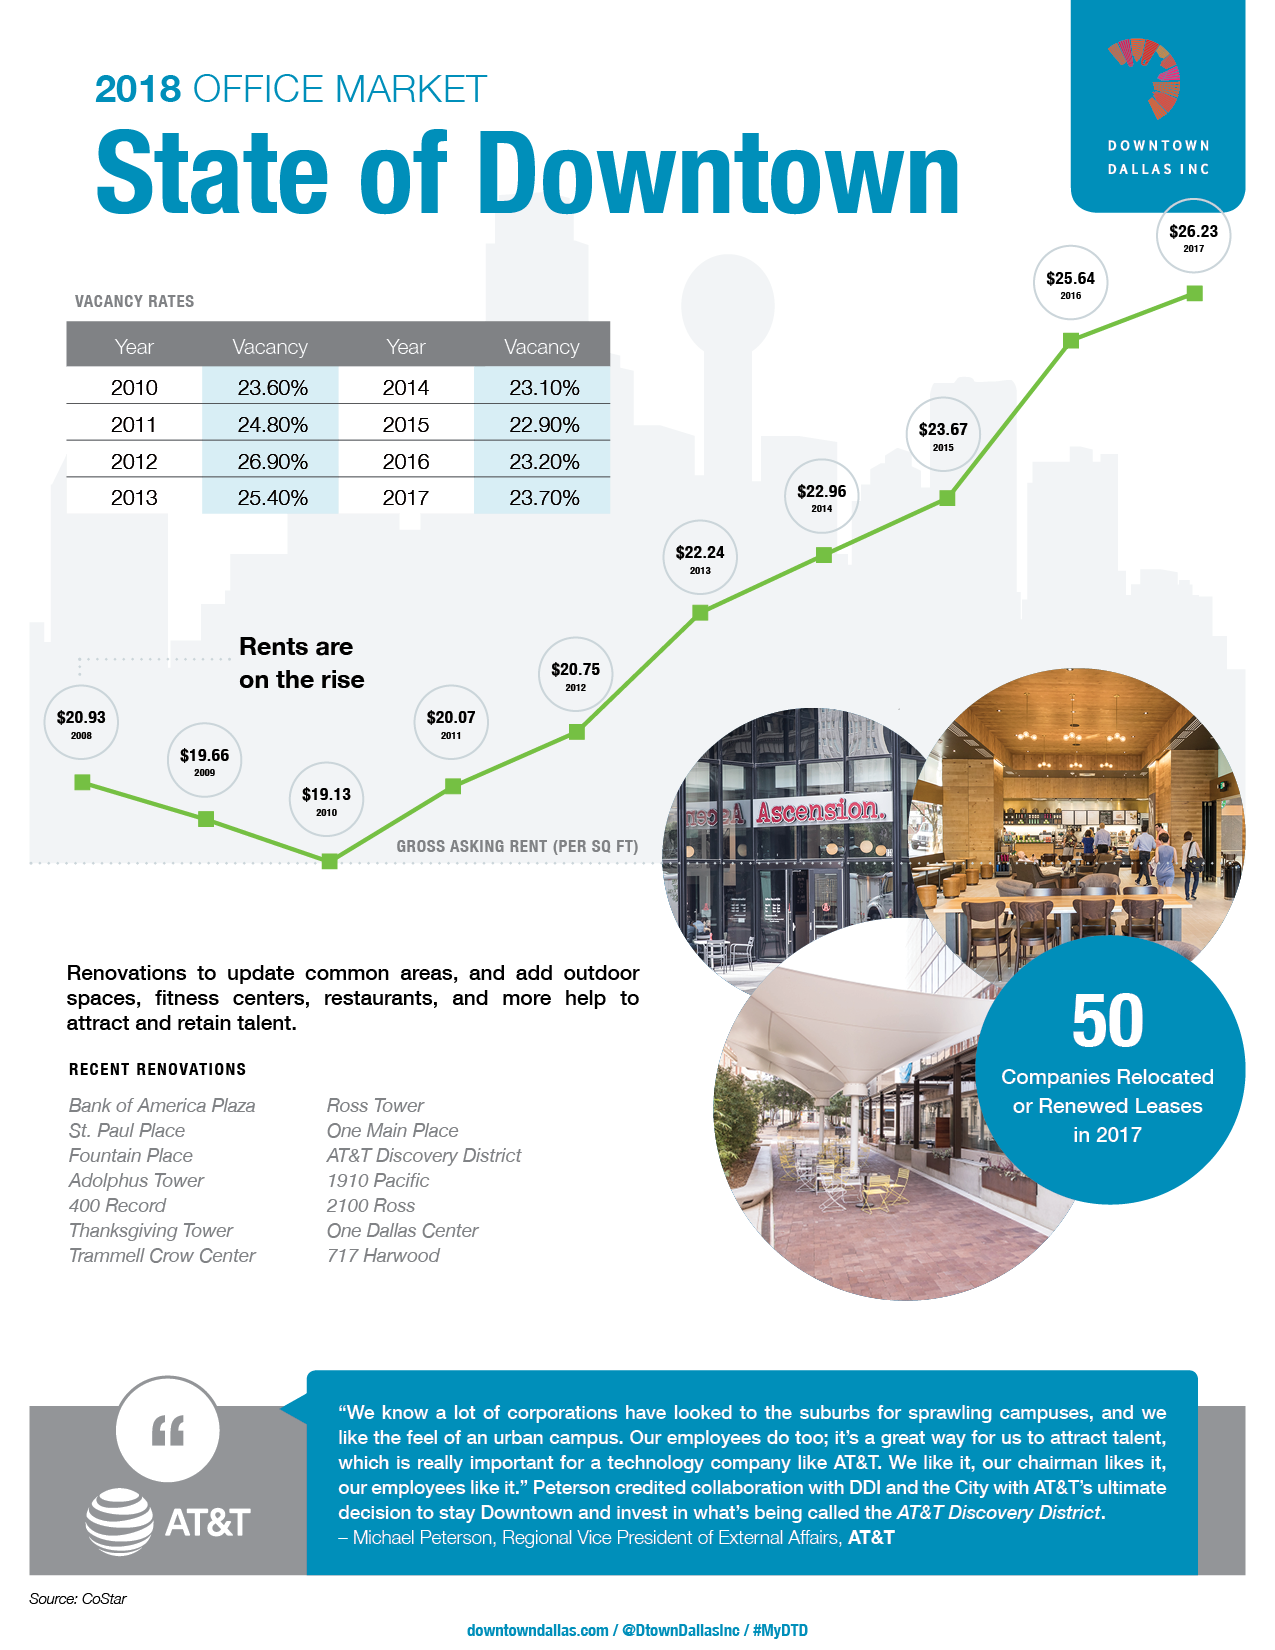 2018 DDI State of Downtown - Office Overview - v62.png